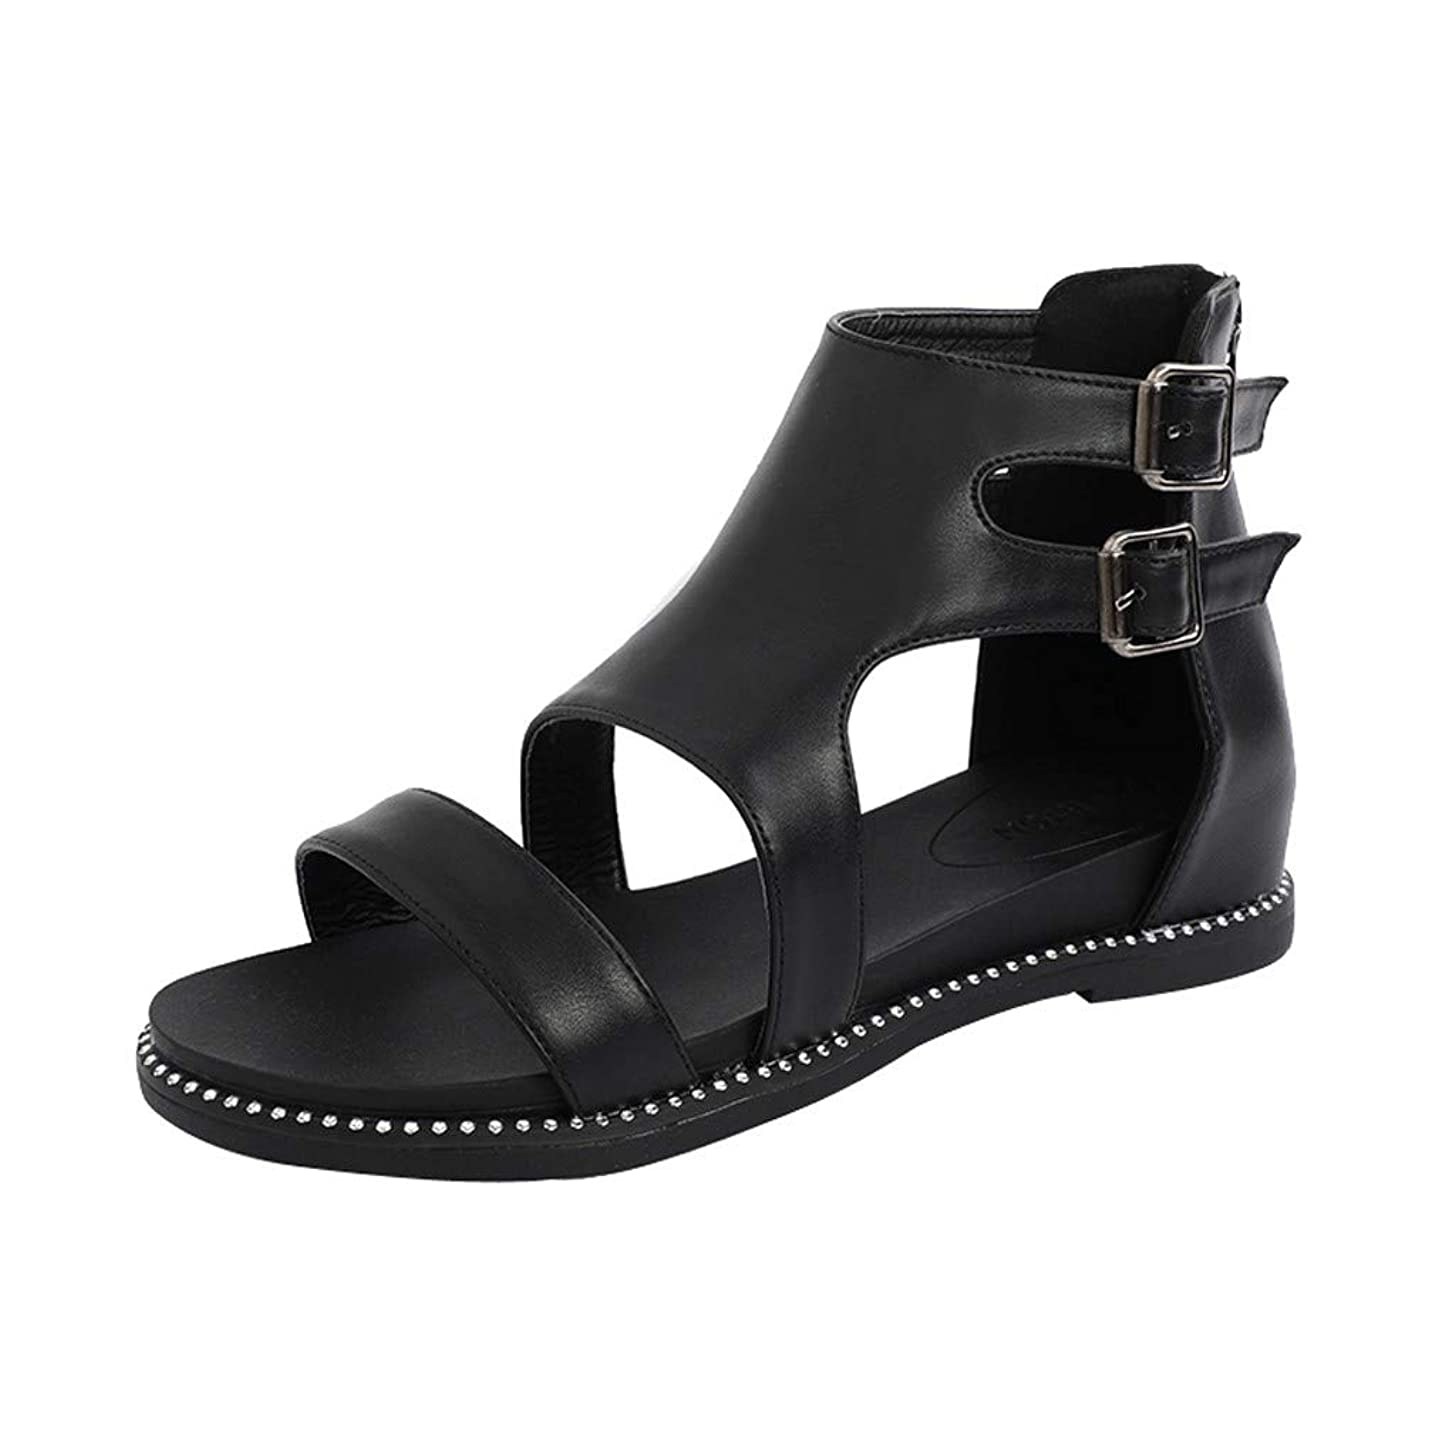 Women's Short Boots Ankle Double Buckle Strappy Shoes Solid Casual Beach Cut Out Open Toe Flat Sandals JHKUNO